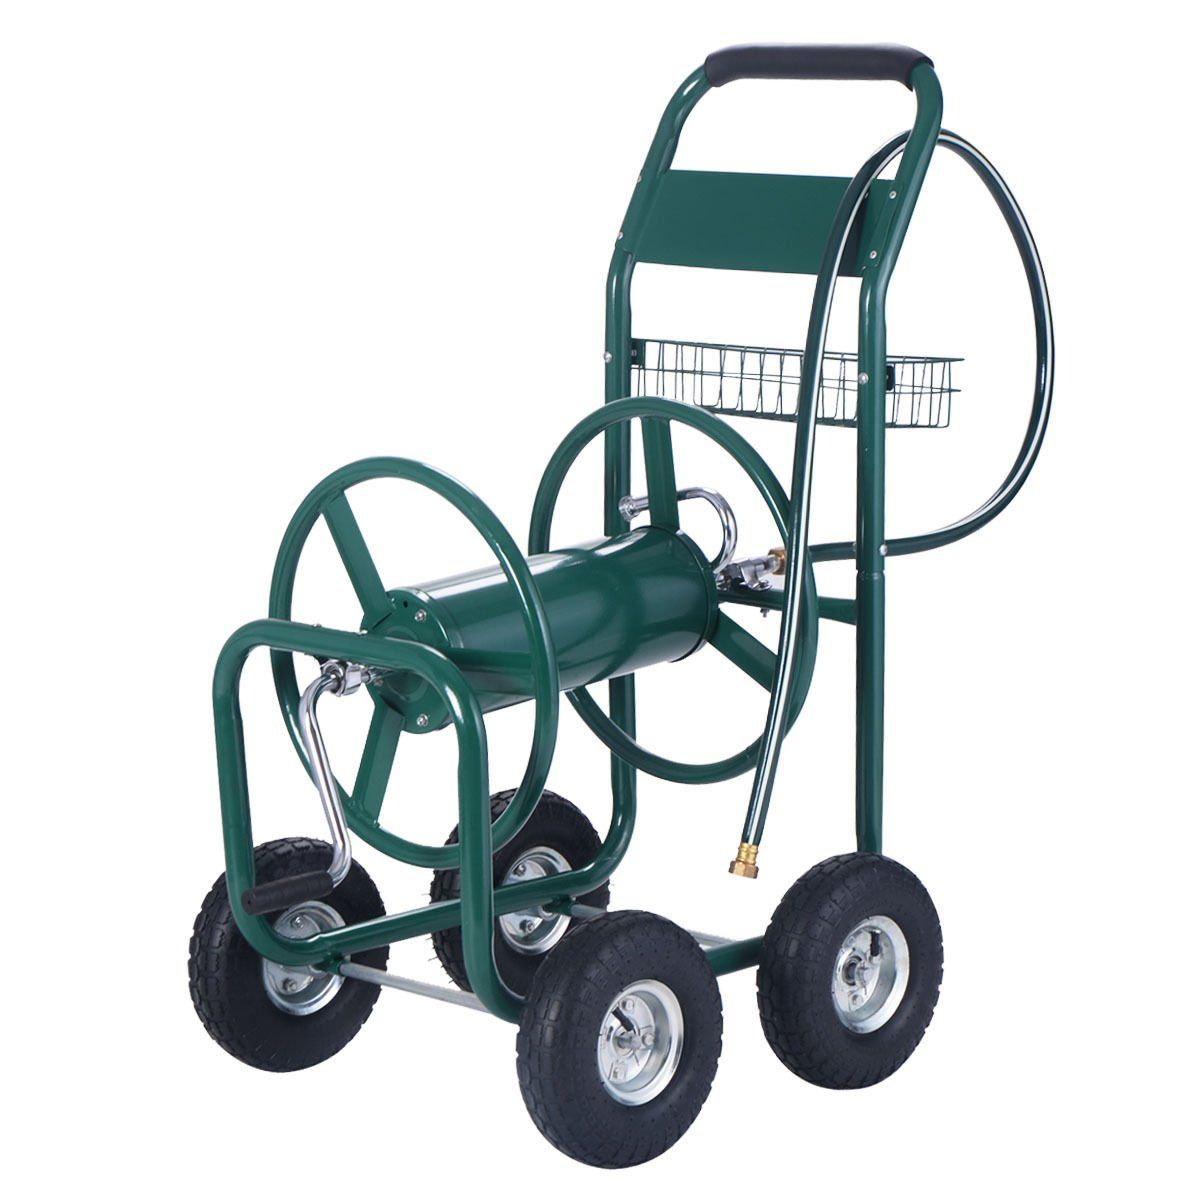 Giantex 300ft Garden Water Hose Reel Cart Outdoor Heavy Duty Yard Water Planting by Giantex